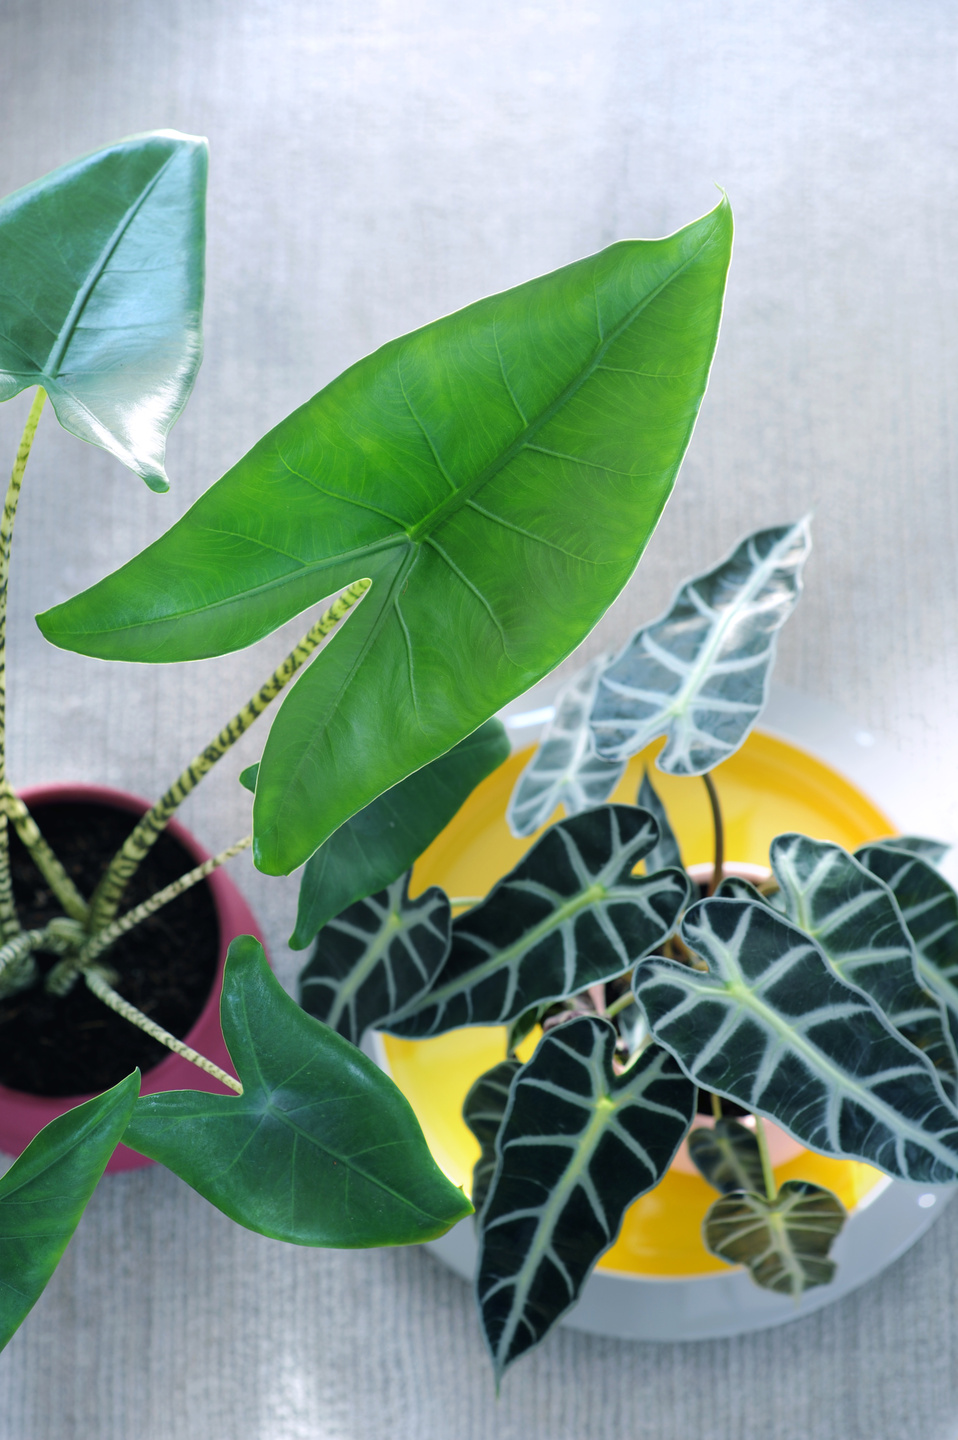 September 2017: Alocasia Houseplant of the Month   Flower ... on colocasia house plant, lantana house plant, scilla house plant, camellia house plant, orchid house plant, filarum house plant, araucaria house plant, small cactus house plant, brugmansia house plant, anubias house plant, pleomele house plant, nephthytis house plant, amaranthus house plant, scindapsus house plant, iris house plant, taro house plant, zinnia house plant, poinsettia house plant, alternanthera house plant, mandevilla house plant,